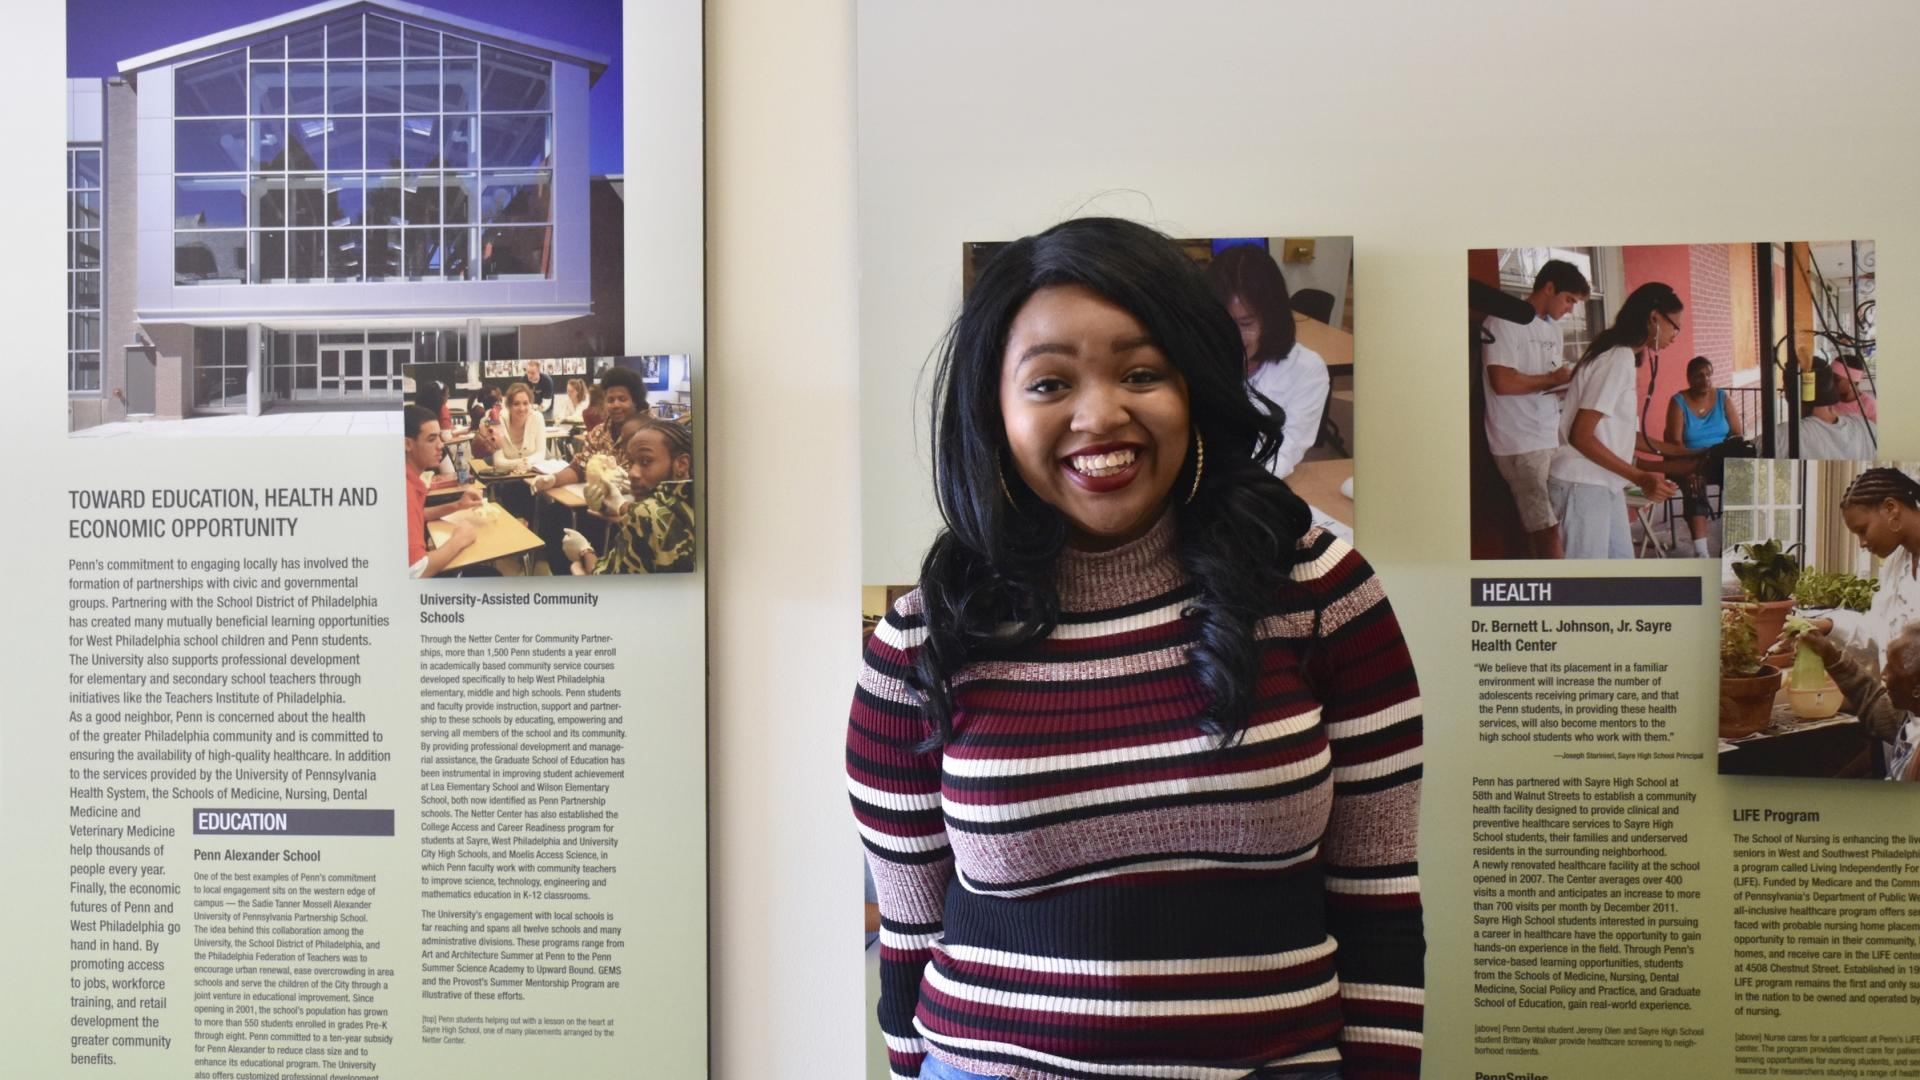 Student in front of signs in the Netter Center for Community Partnerships